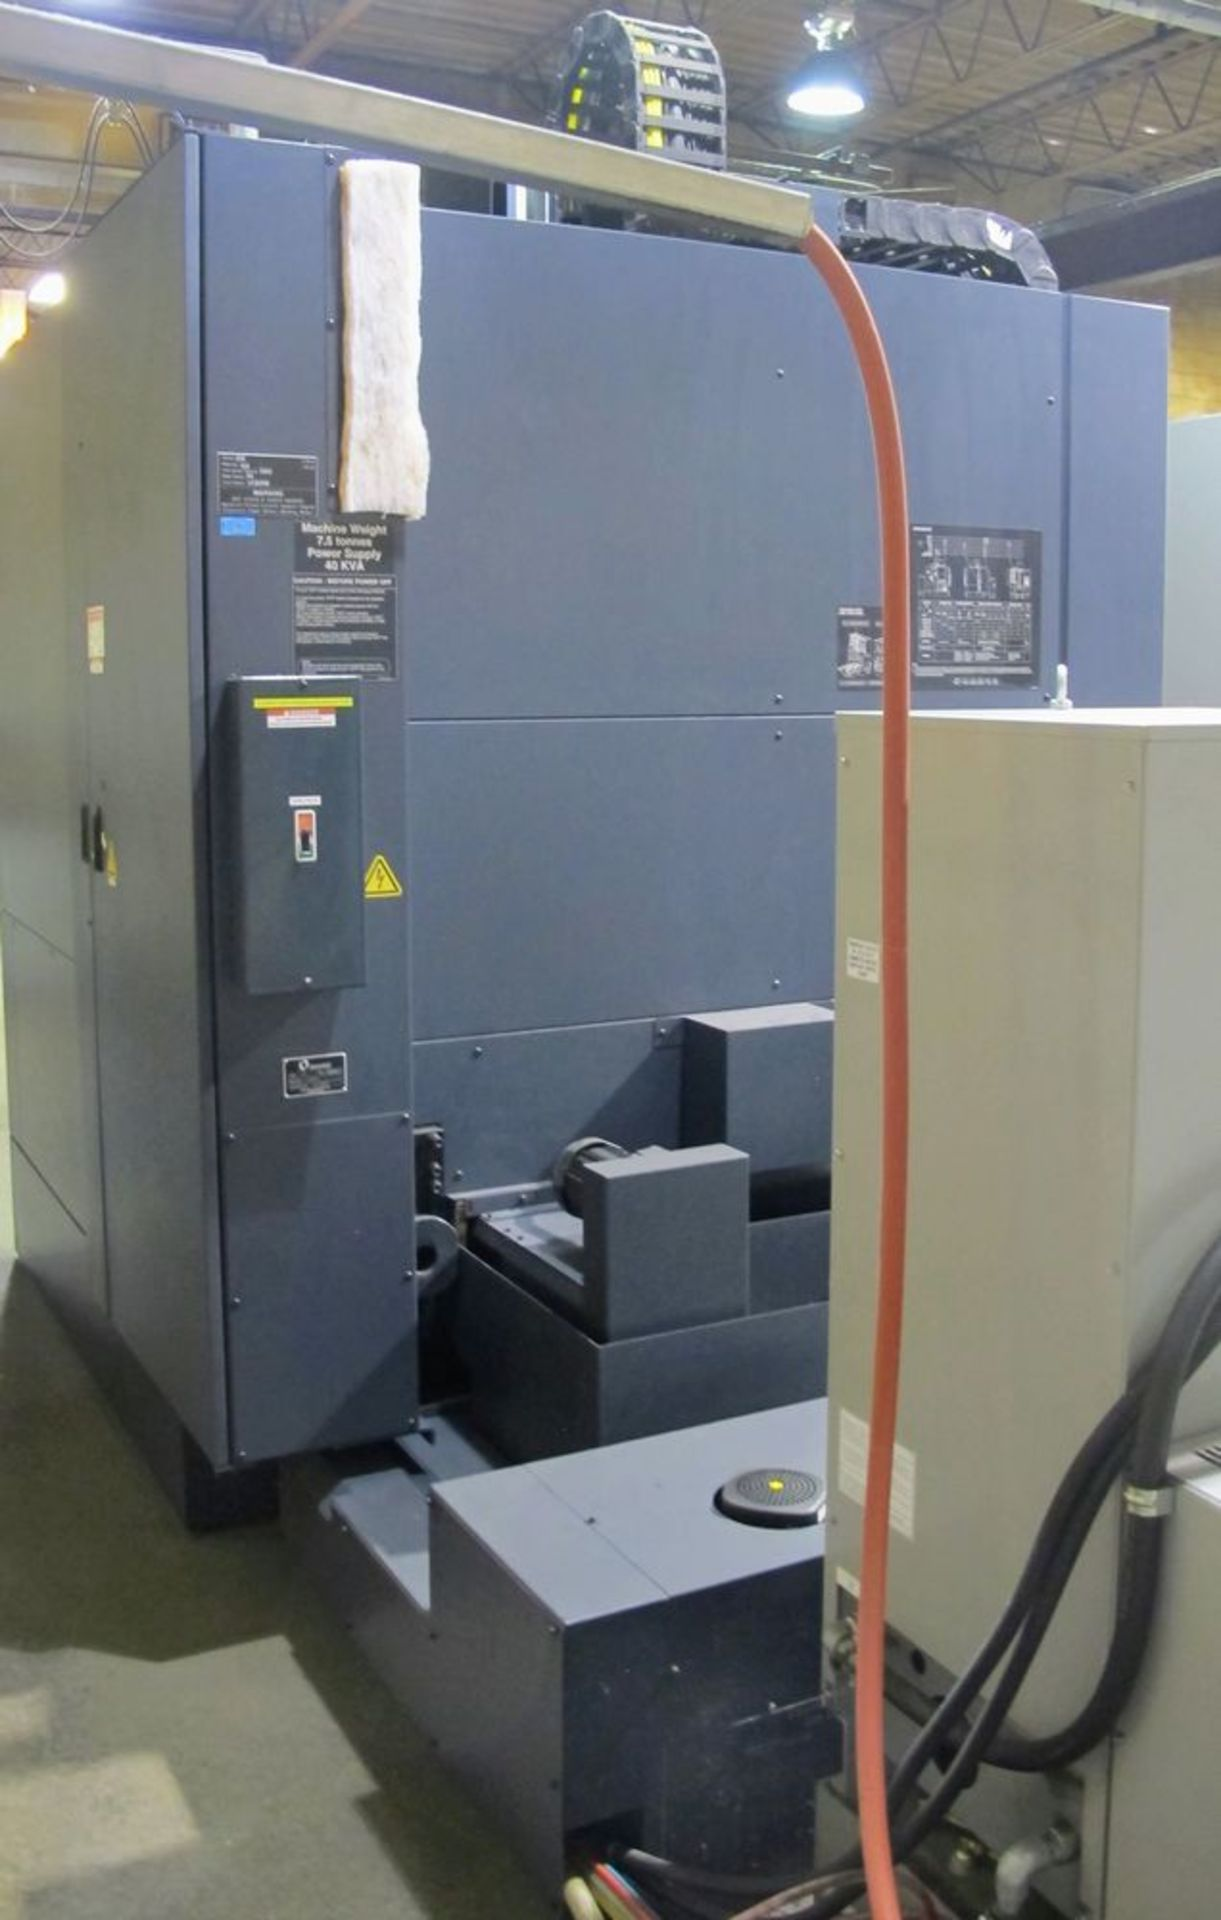 "Lot 10 - 2014 MAKINO F5 CNC Vertical Machining Center, s/n V150789 (9,576 Spindle Hrs), 20"" x 40"" Table ("